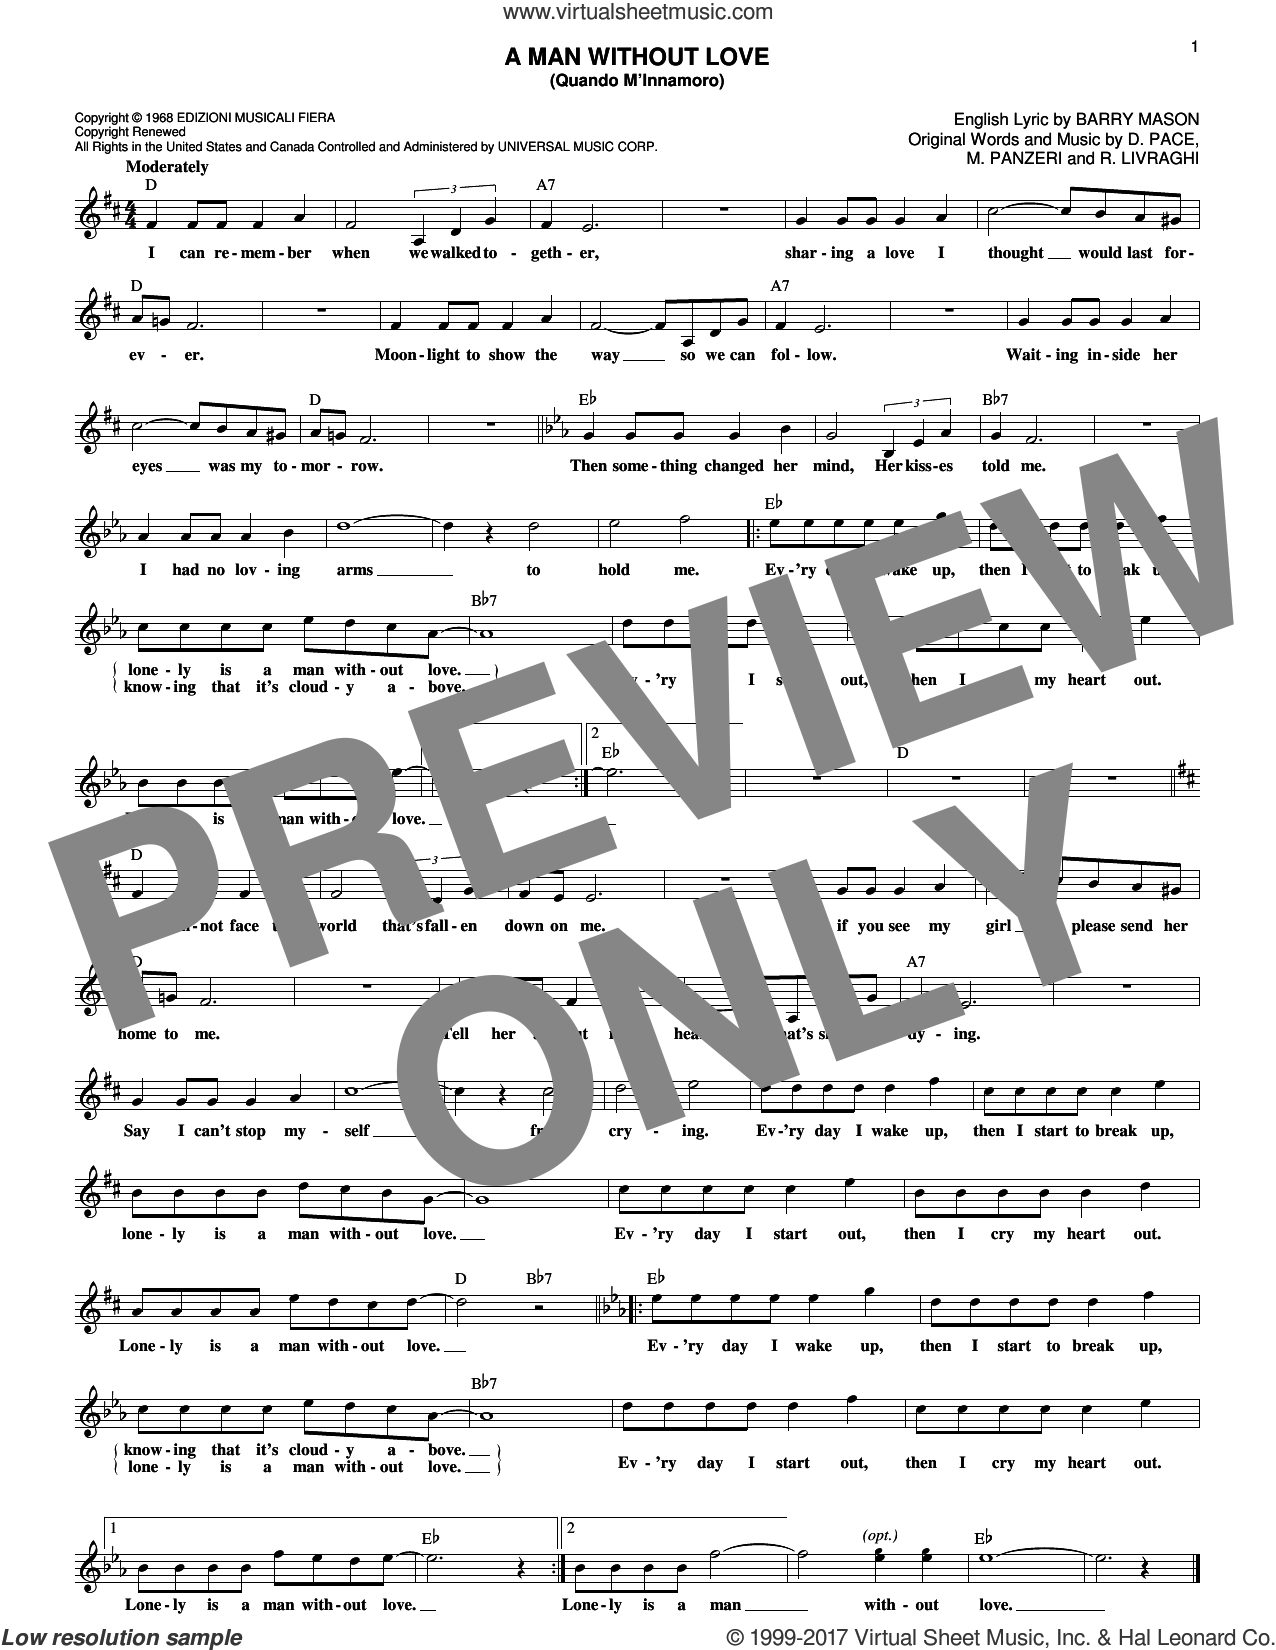 A Man Without Love (Quando M'Innamoro) sheet music for voice and other instruments (fake book) by Engelbert Humperdinck, Barry Mason, D. Pace, M. Panzeri and R. Livraghi, intermediate skill level